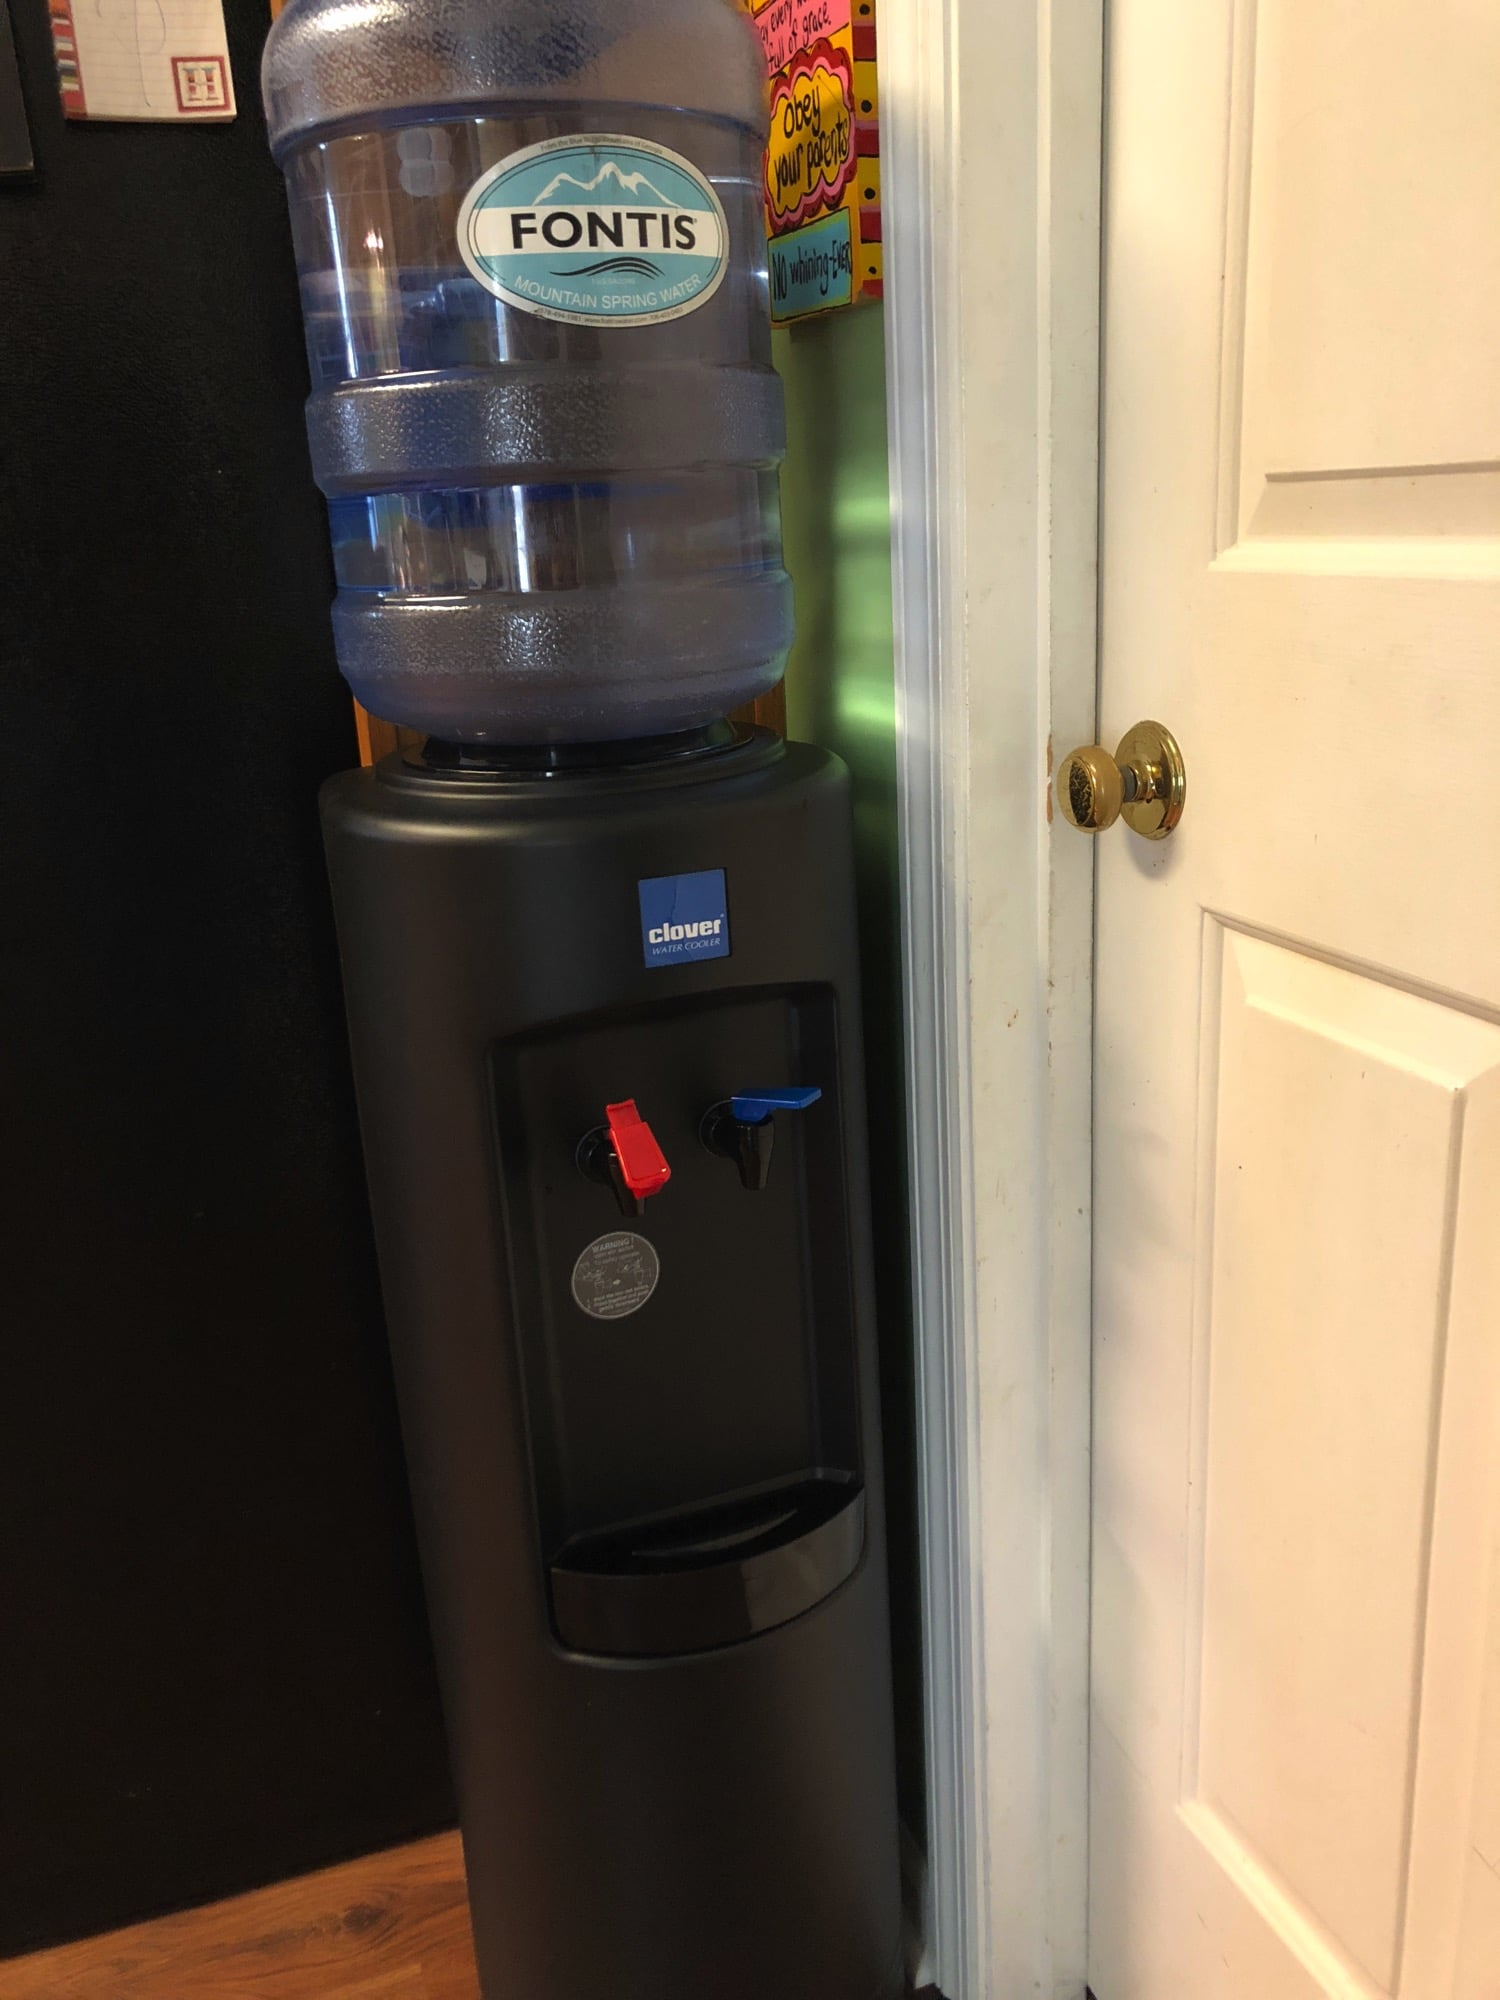 Fontis water review with water cooler